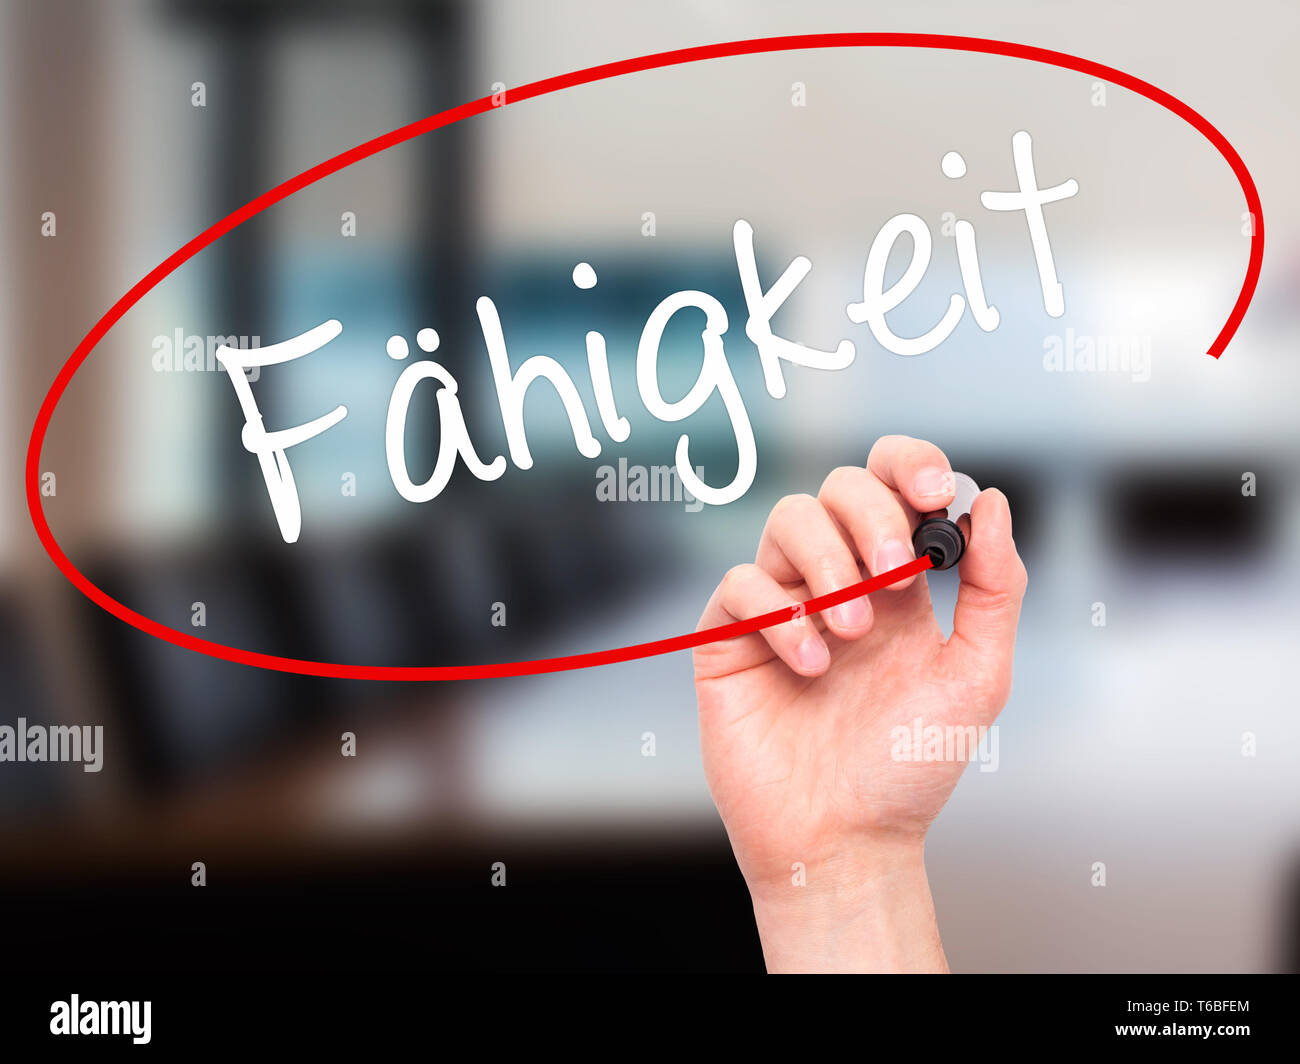 Man Hand writing Fahigkeit (Ability in German) with black marker on visual screen Stock Photo